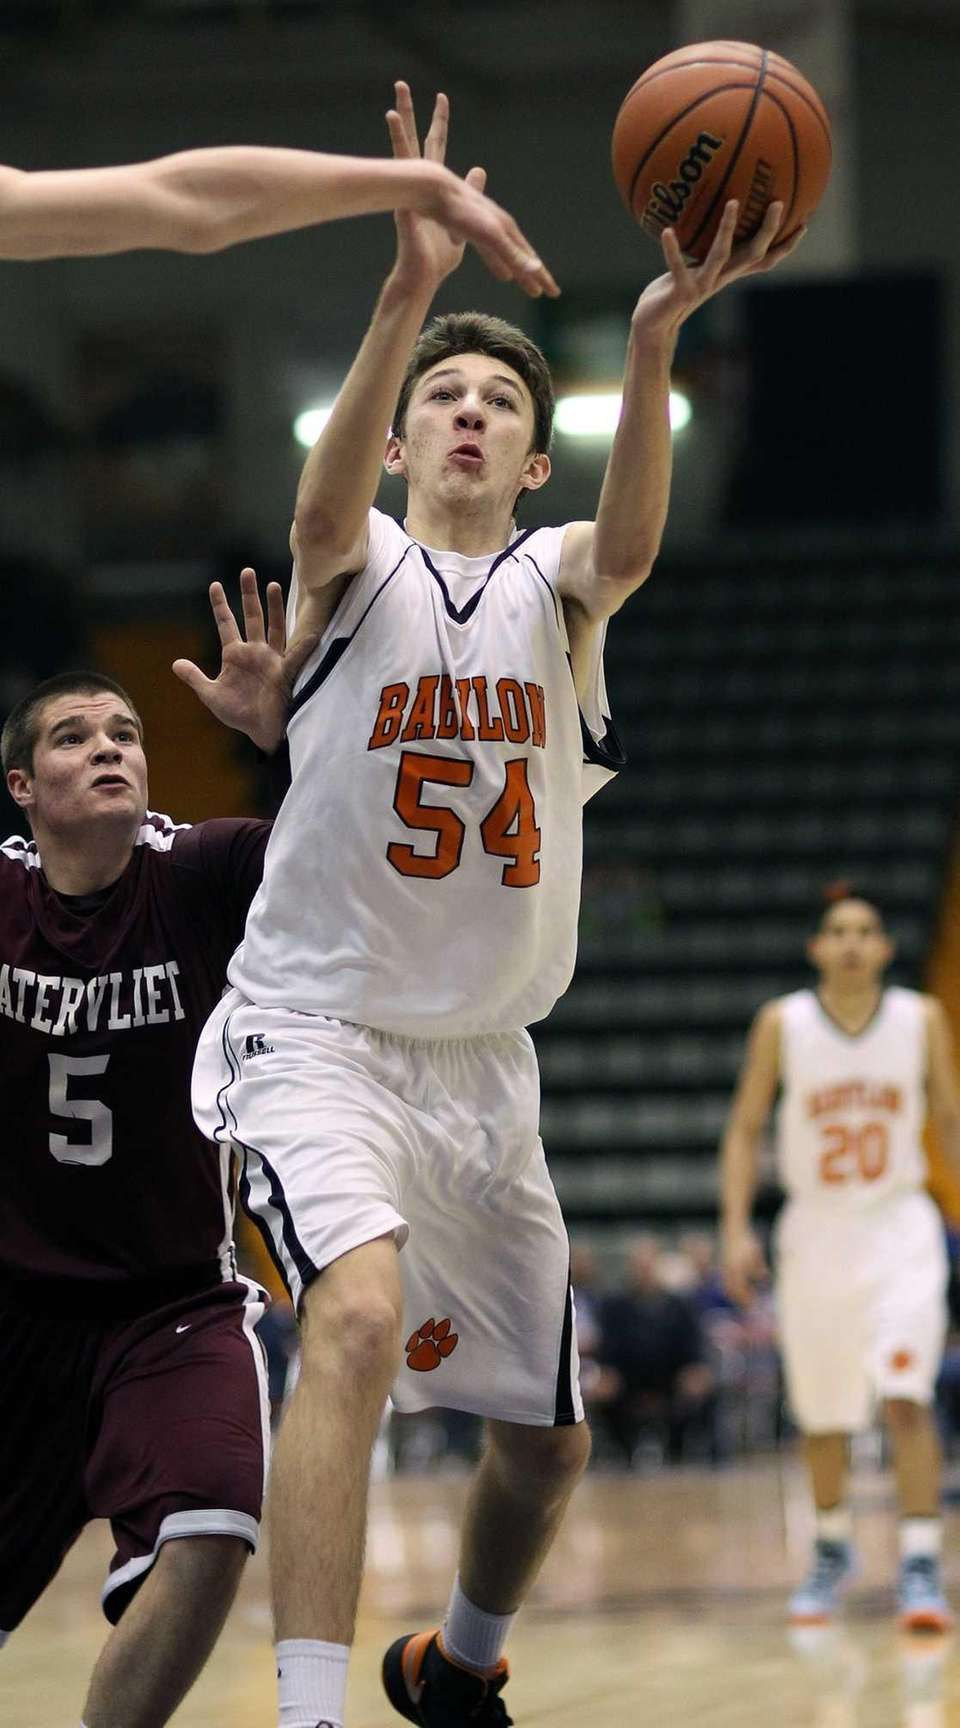 Babylon's Brendan Laing goes for the ball. (March